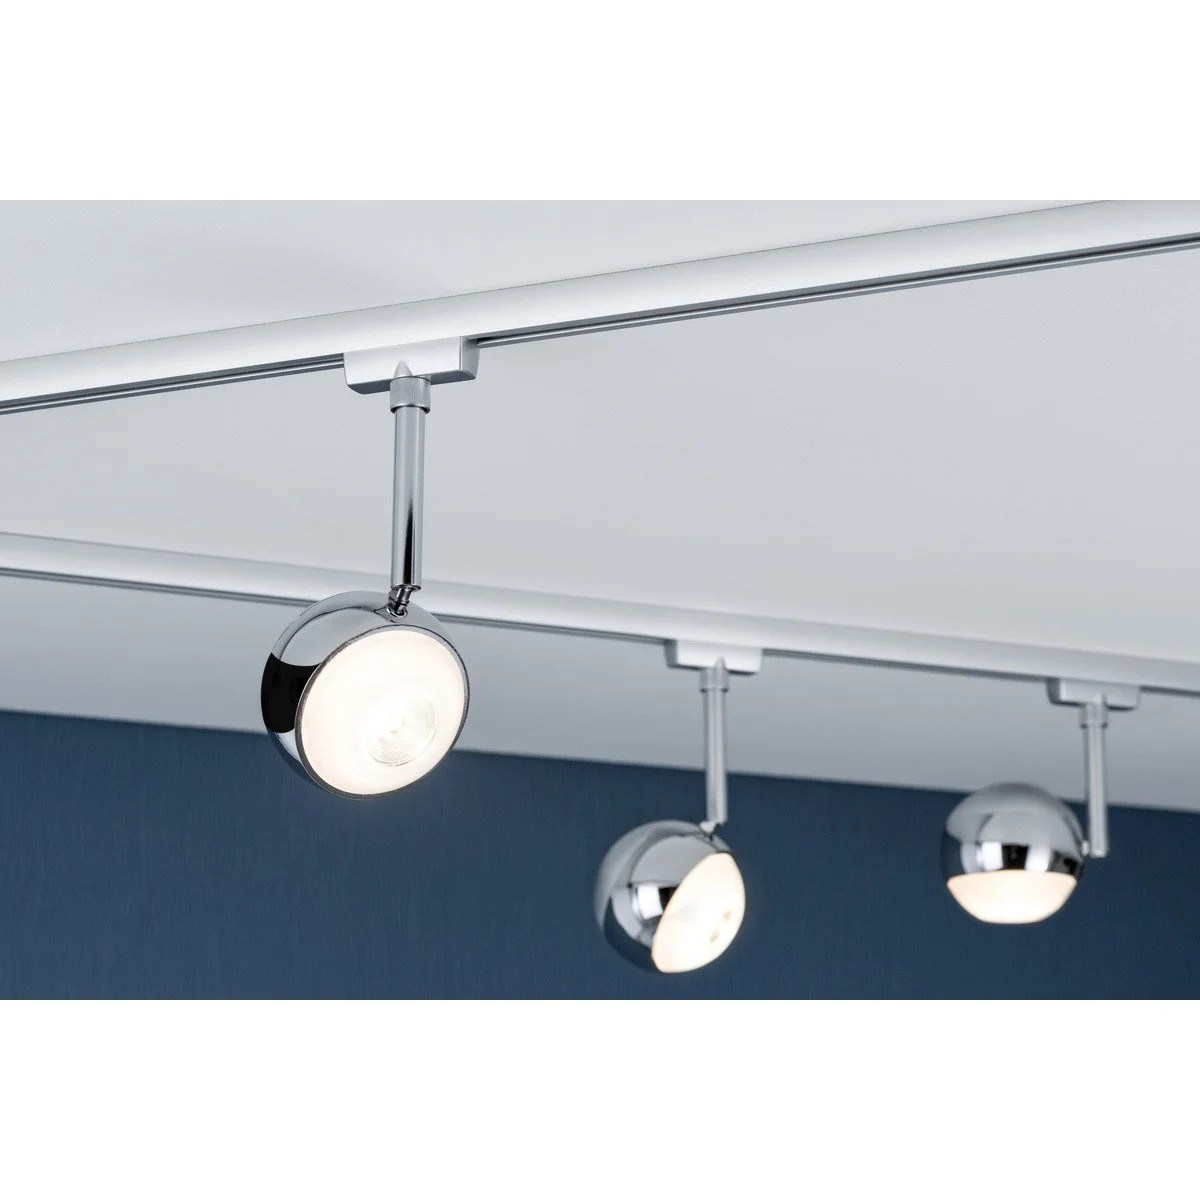 Leroy Merlin Luminaires Suspension Luminaire Brilliant Leroy Merlin Amazing Stunning Plafonnier